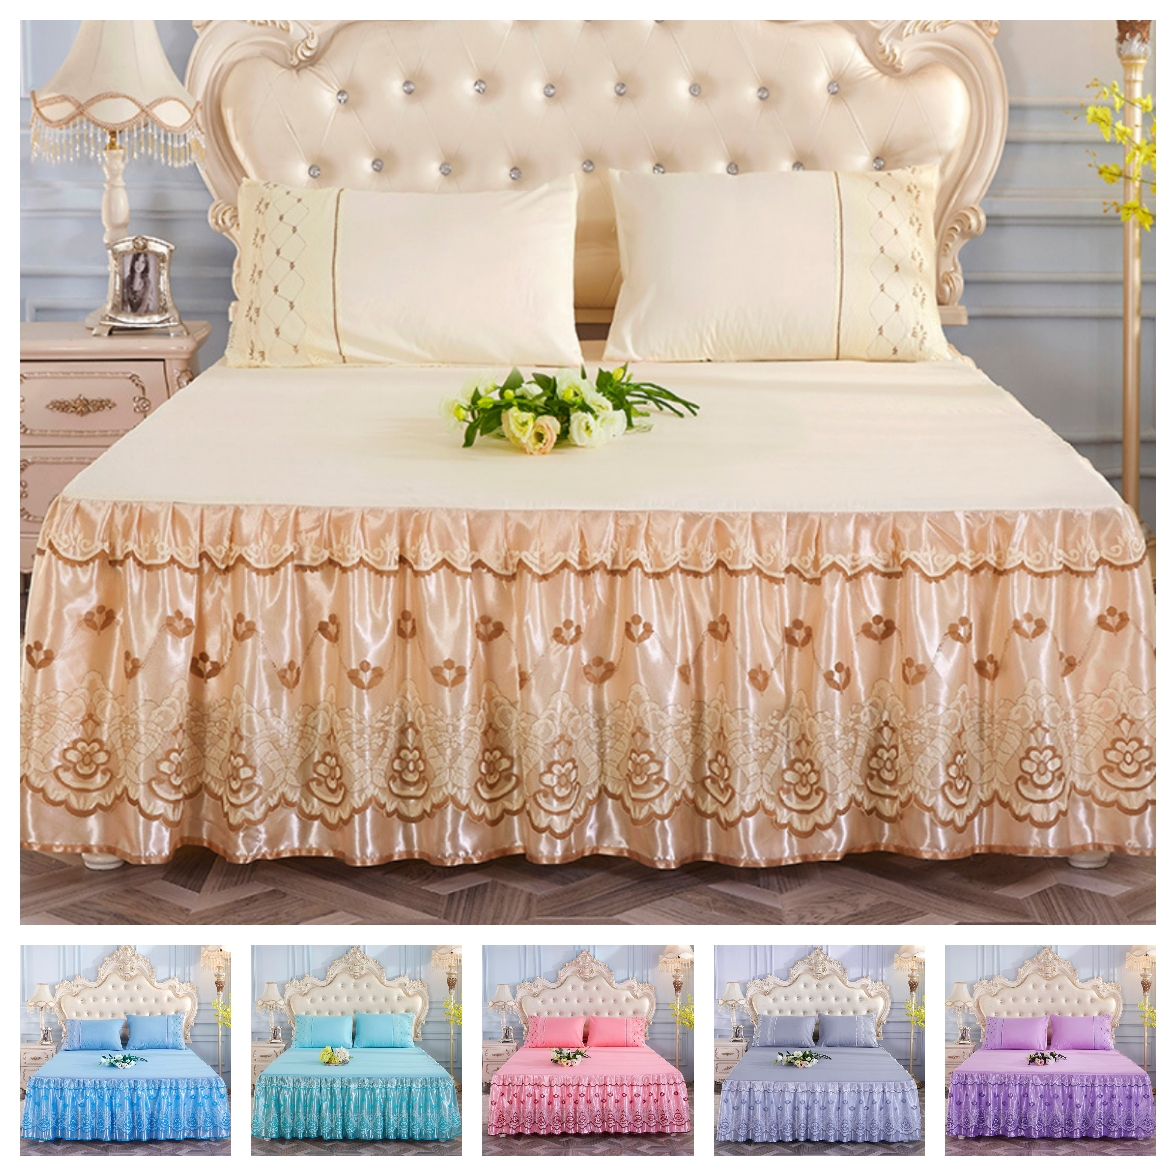 2020 Princess Bedding Solid Ruffled Bed Skirt Pillowcases Lace Bed Sheets Mattress Cover King Queen Full Twin Size Bed Cover